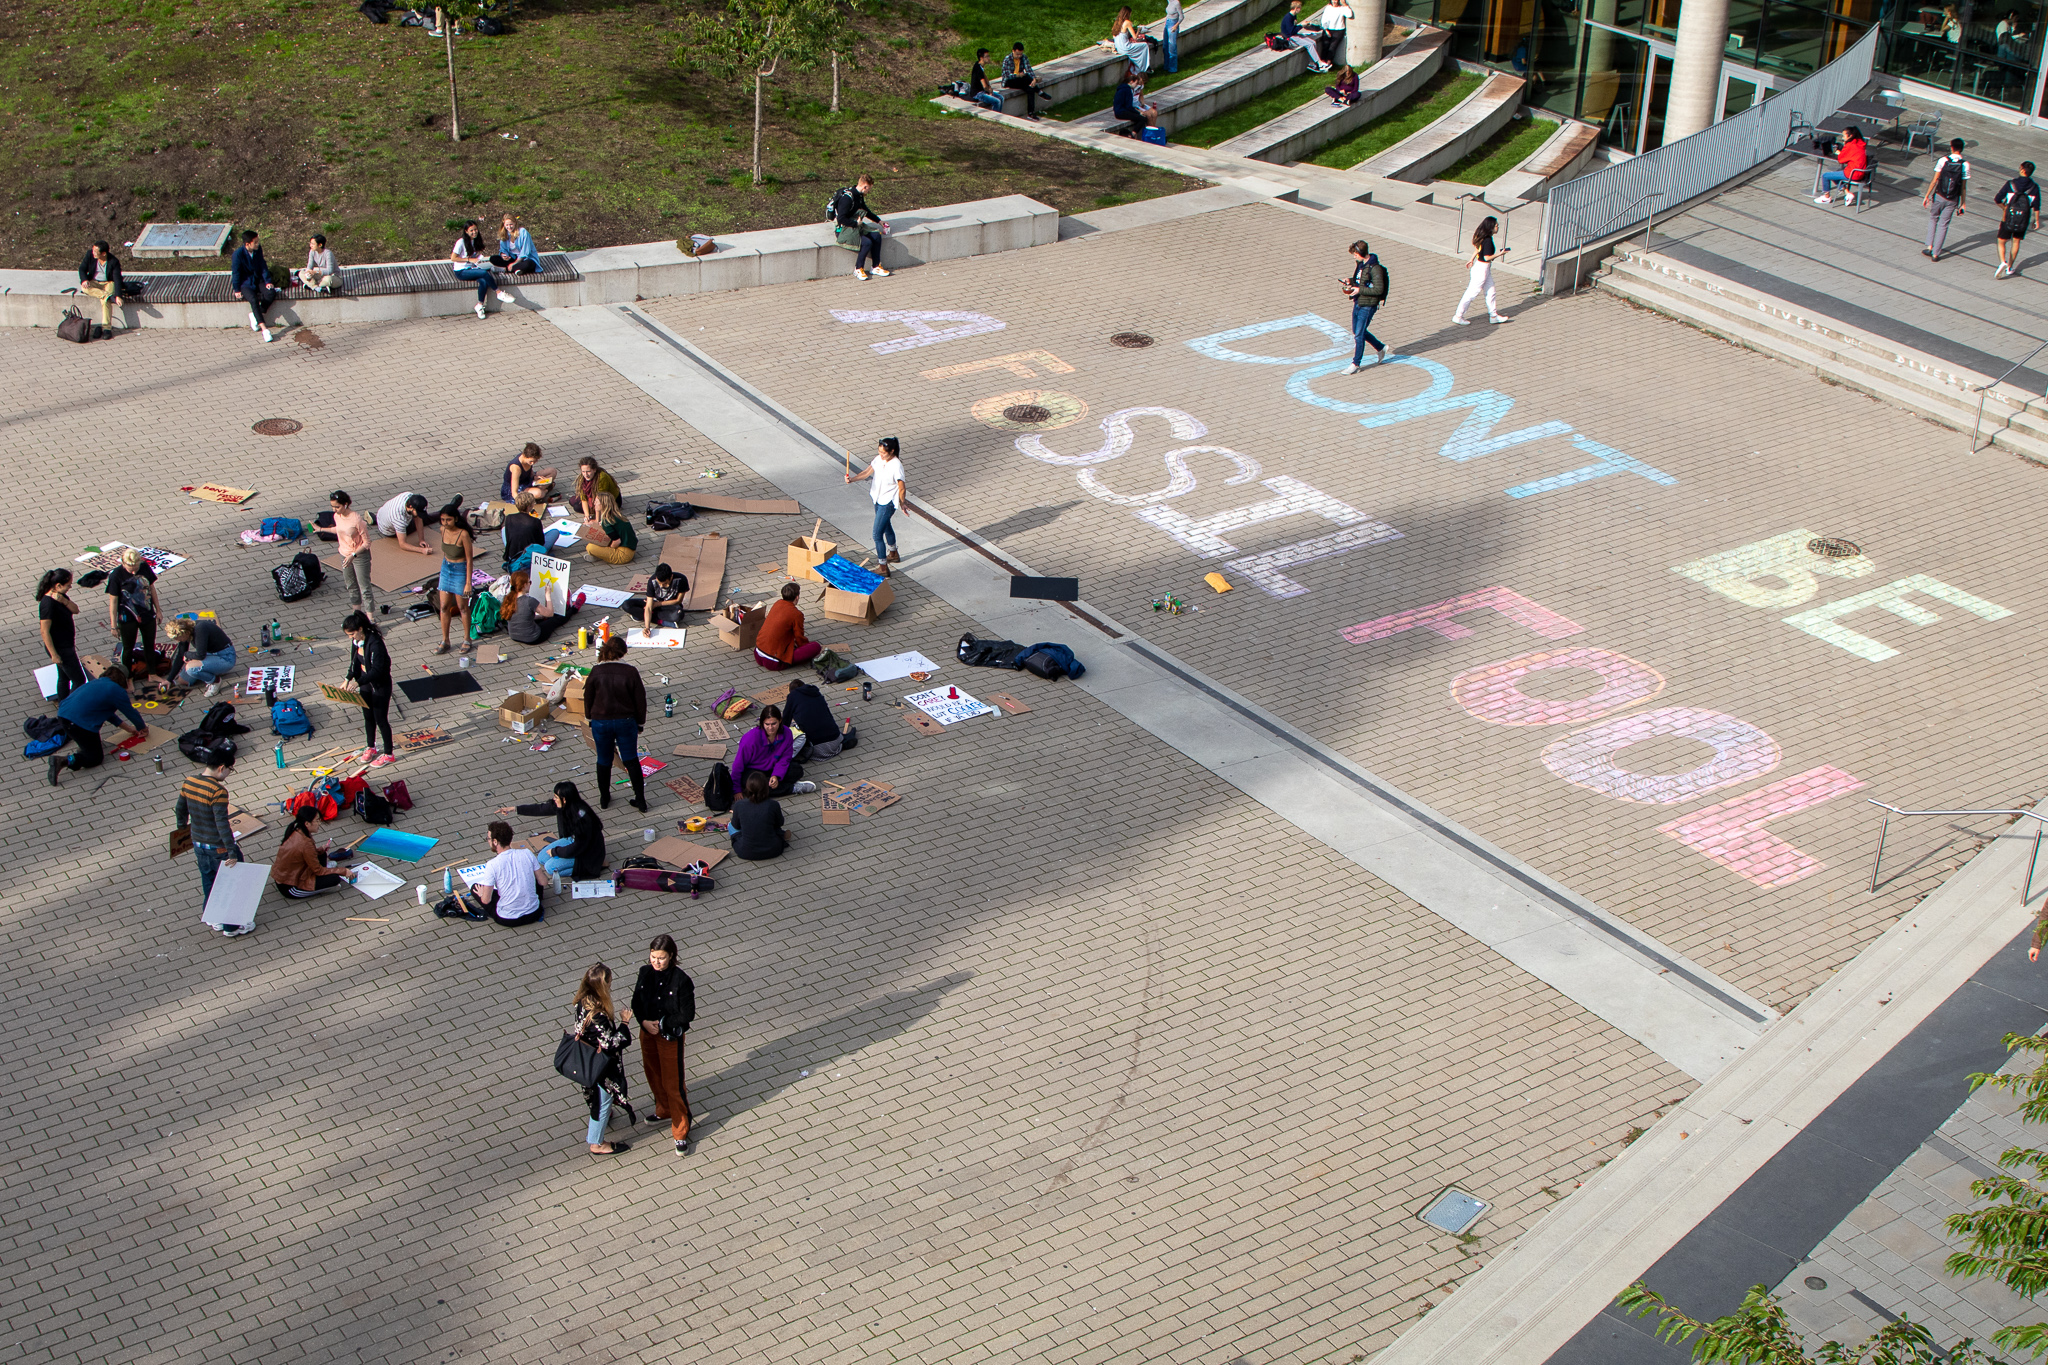 UBCC350 held a sign-making session on Tuesday afternoon outside the Nest.